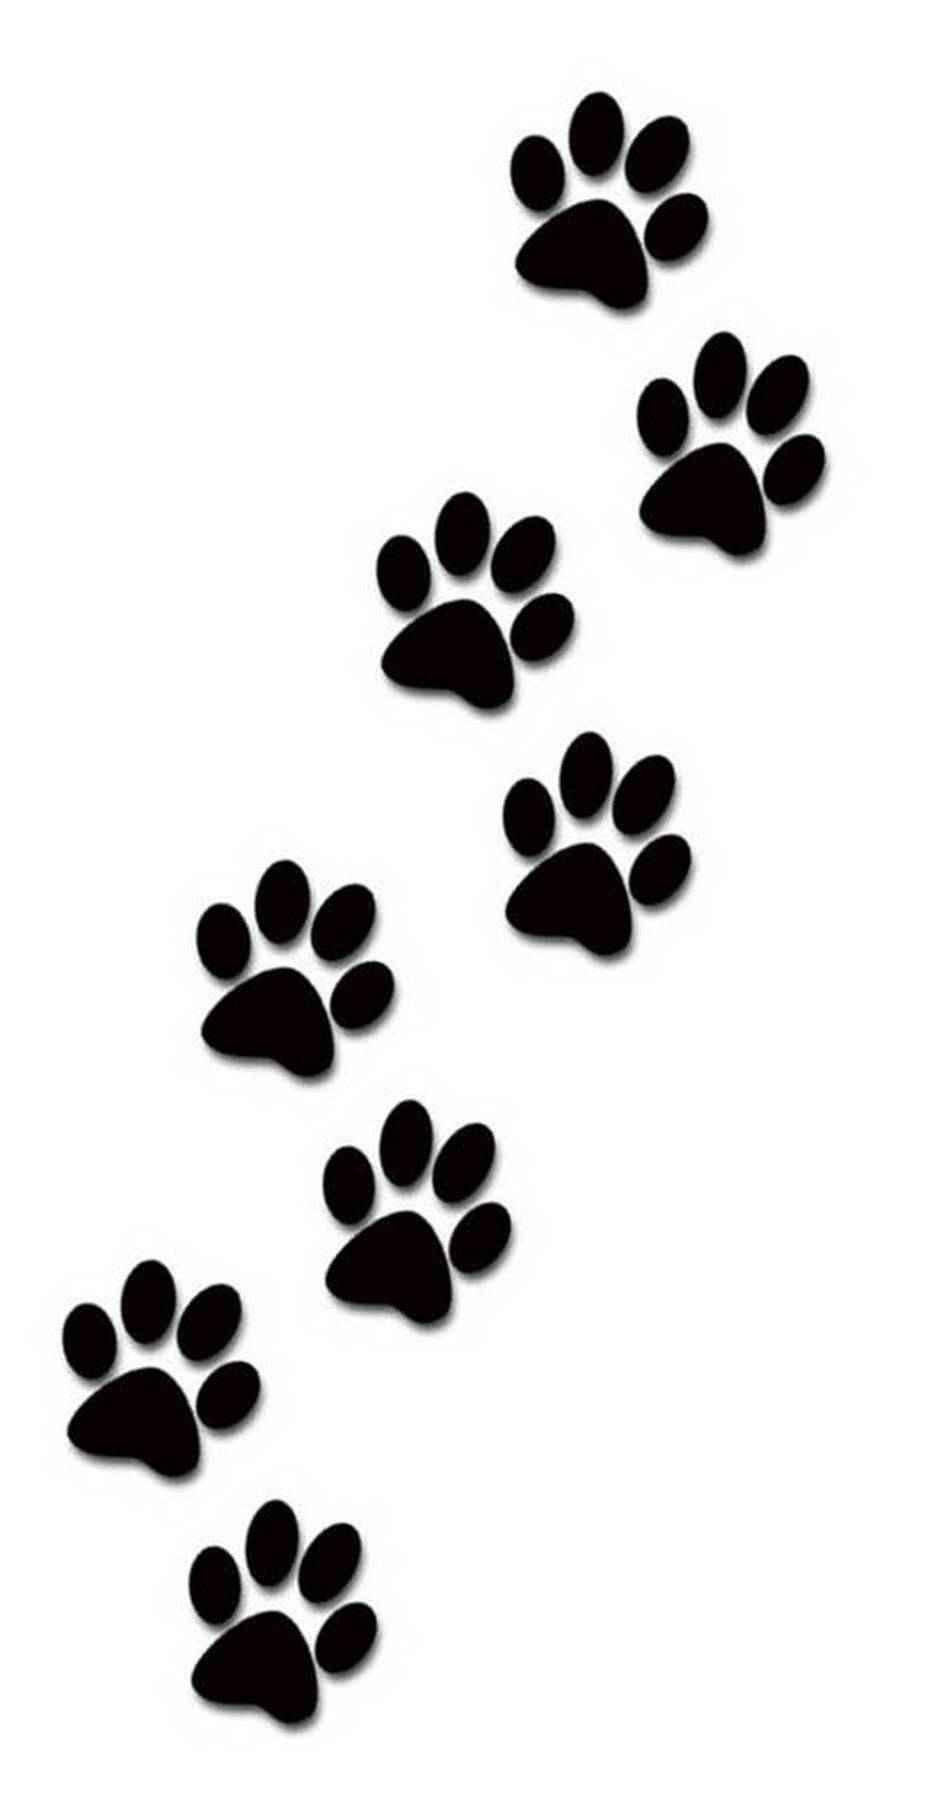 948x1816 Excelent Pinsamantha Littner On Tats Dogs, Dog Paw Drawing, Cats